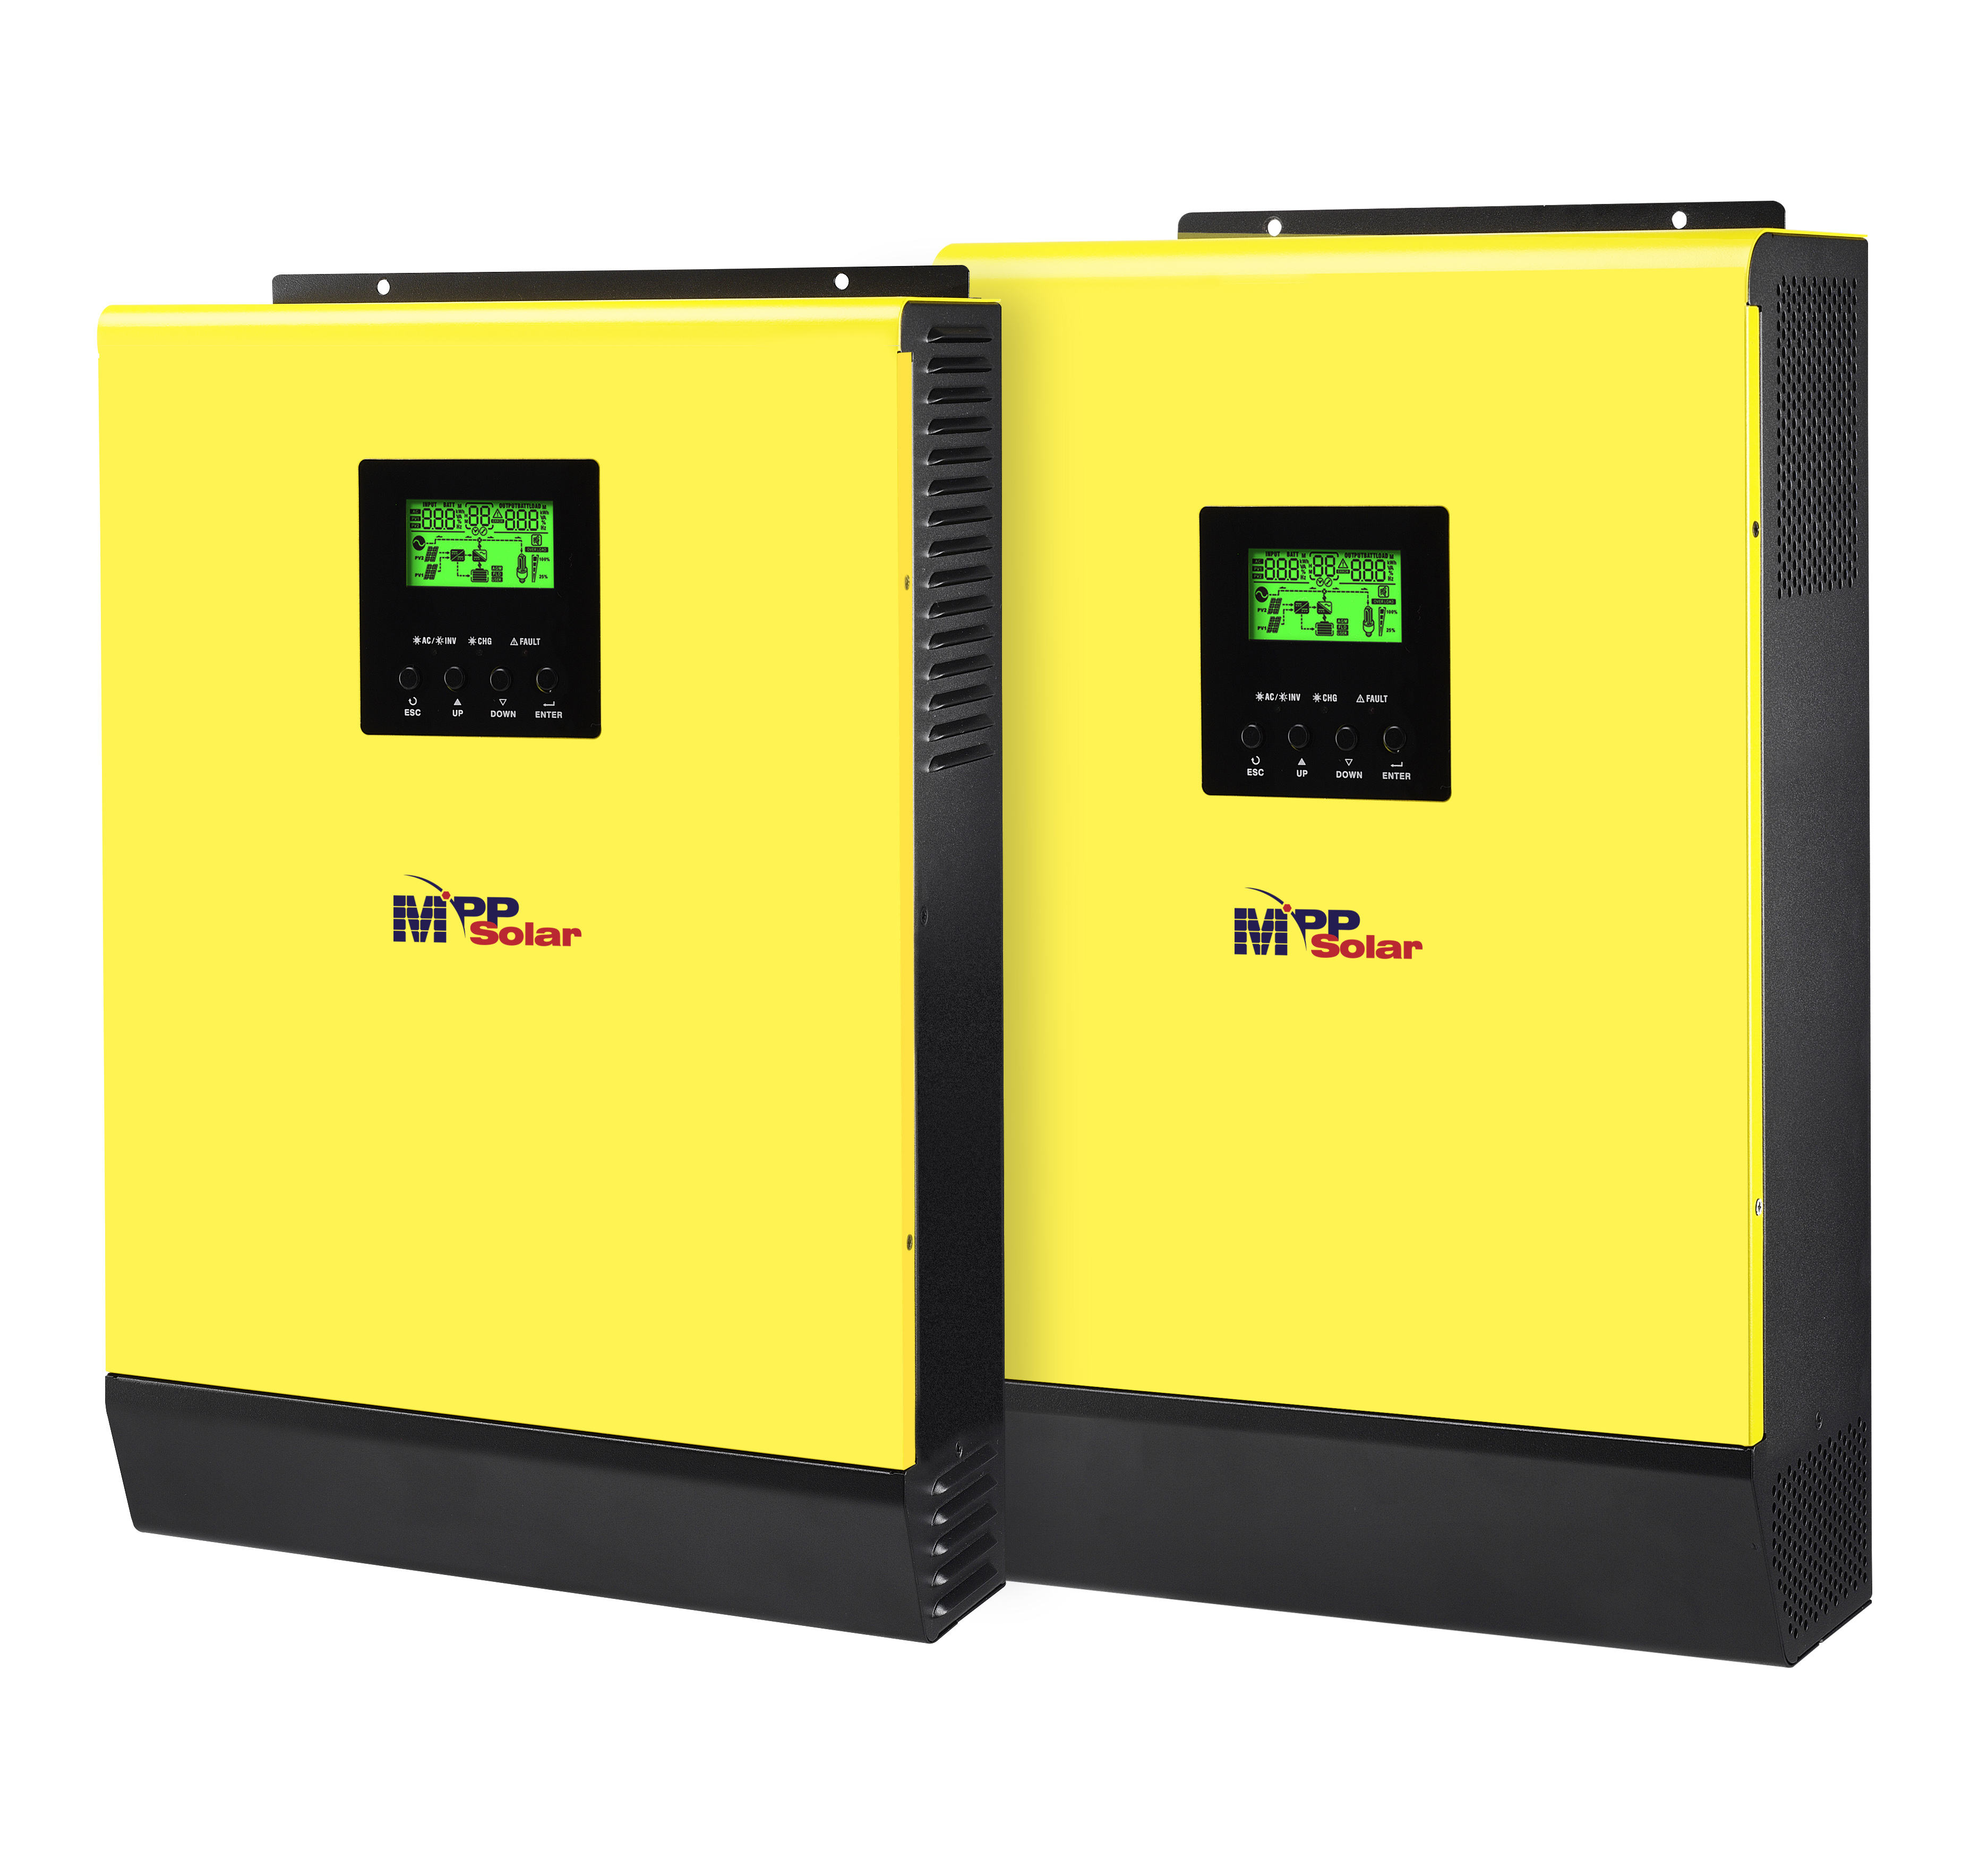 Hybrid Solar inverter 3000w 48v 230vac high PV input 450Vdc 60A mppt solar charger 60A battery charger grid tied inverter